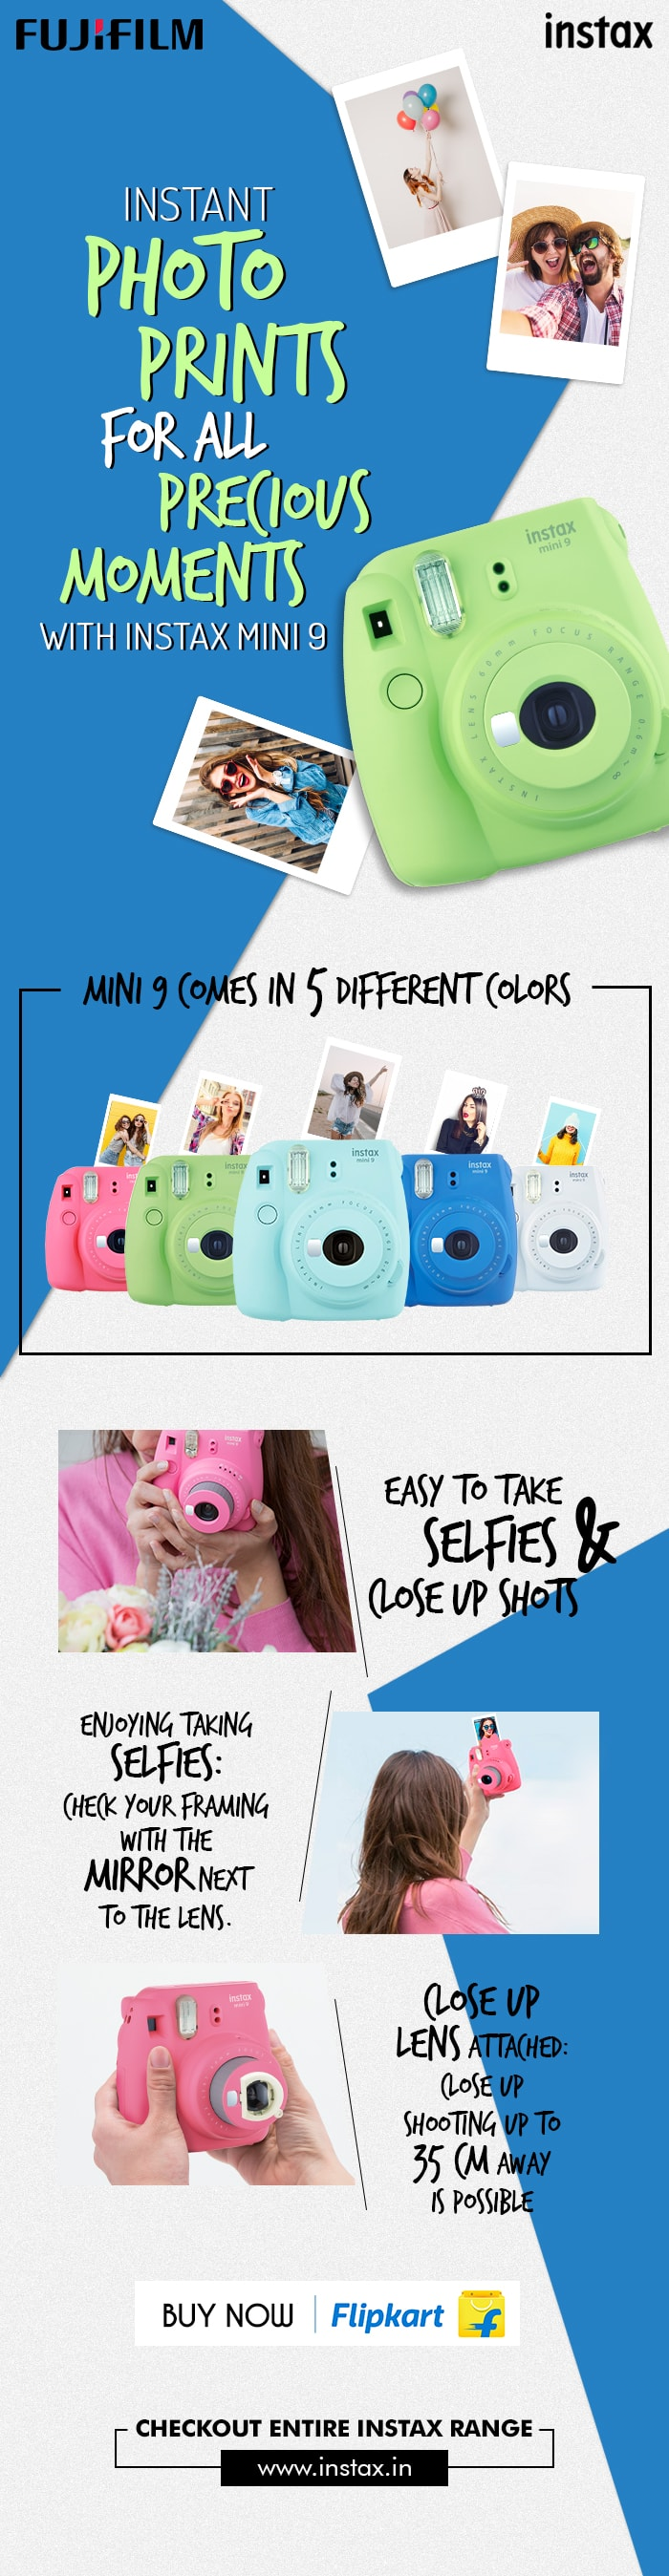 Instant-Photo-Prints-for-all-precious-moments-with-Instax-Mini-9